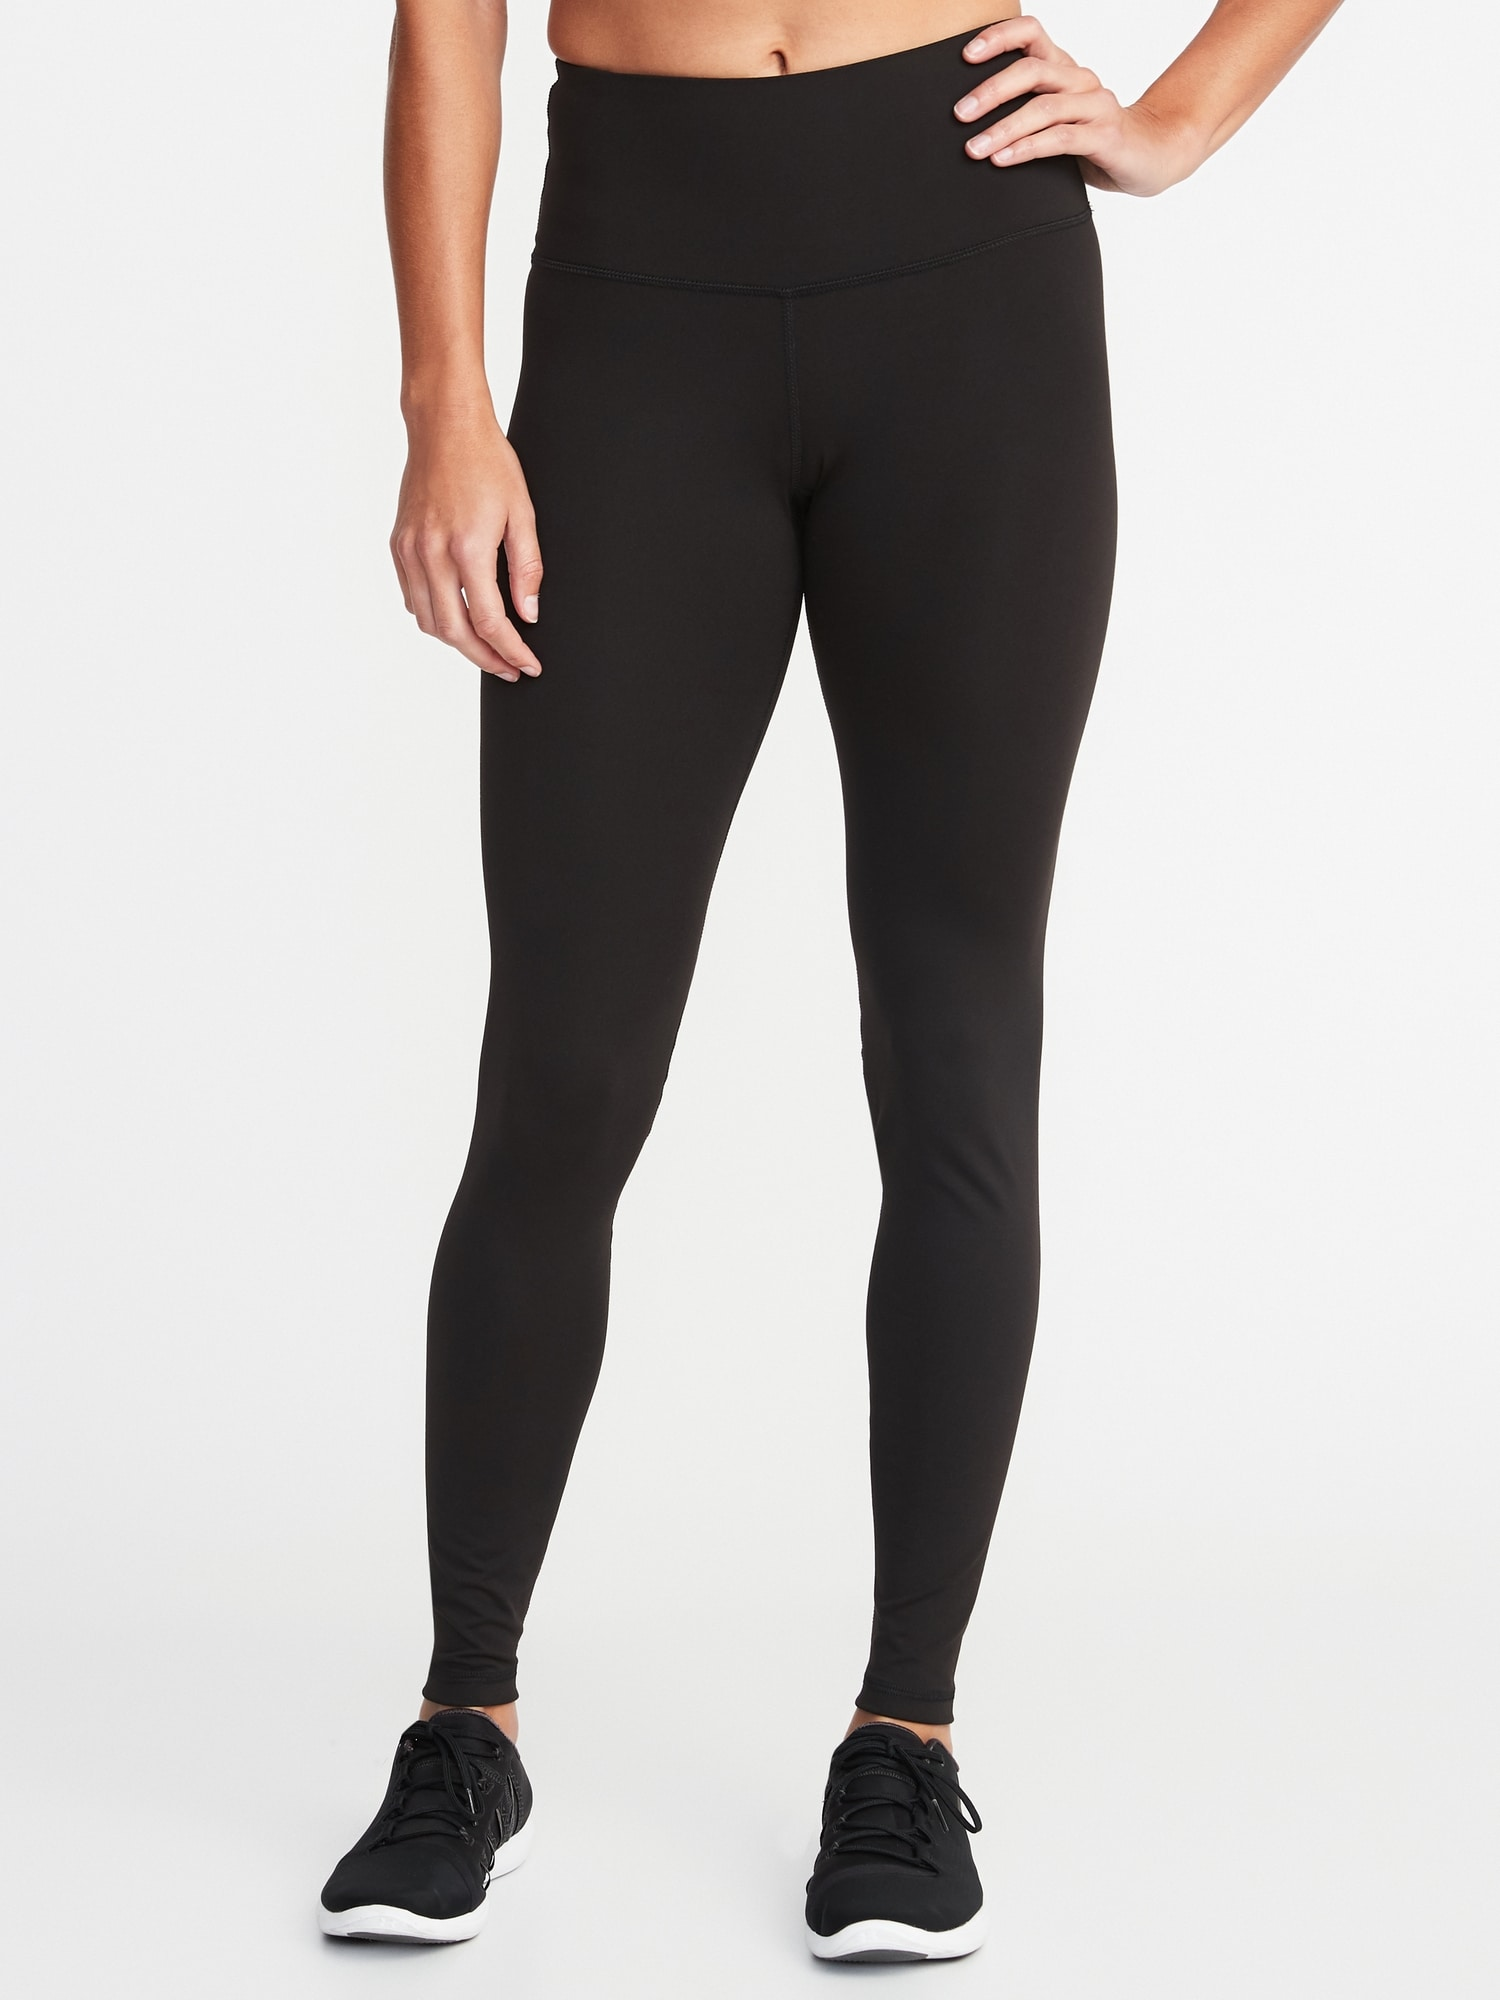 0fc81229e365e High-Rise Elevate Compression Leggings for Women | Old Navy